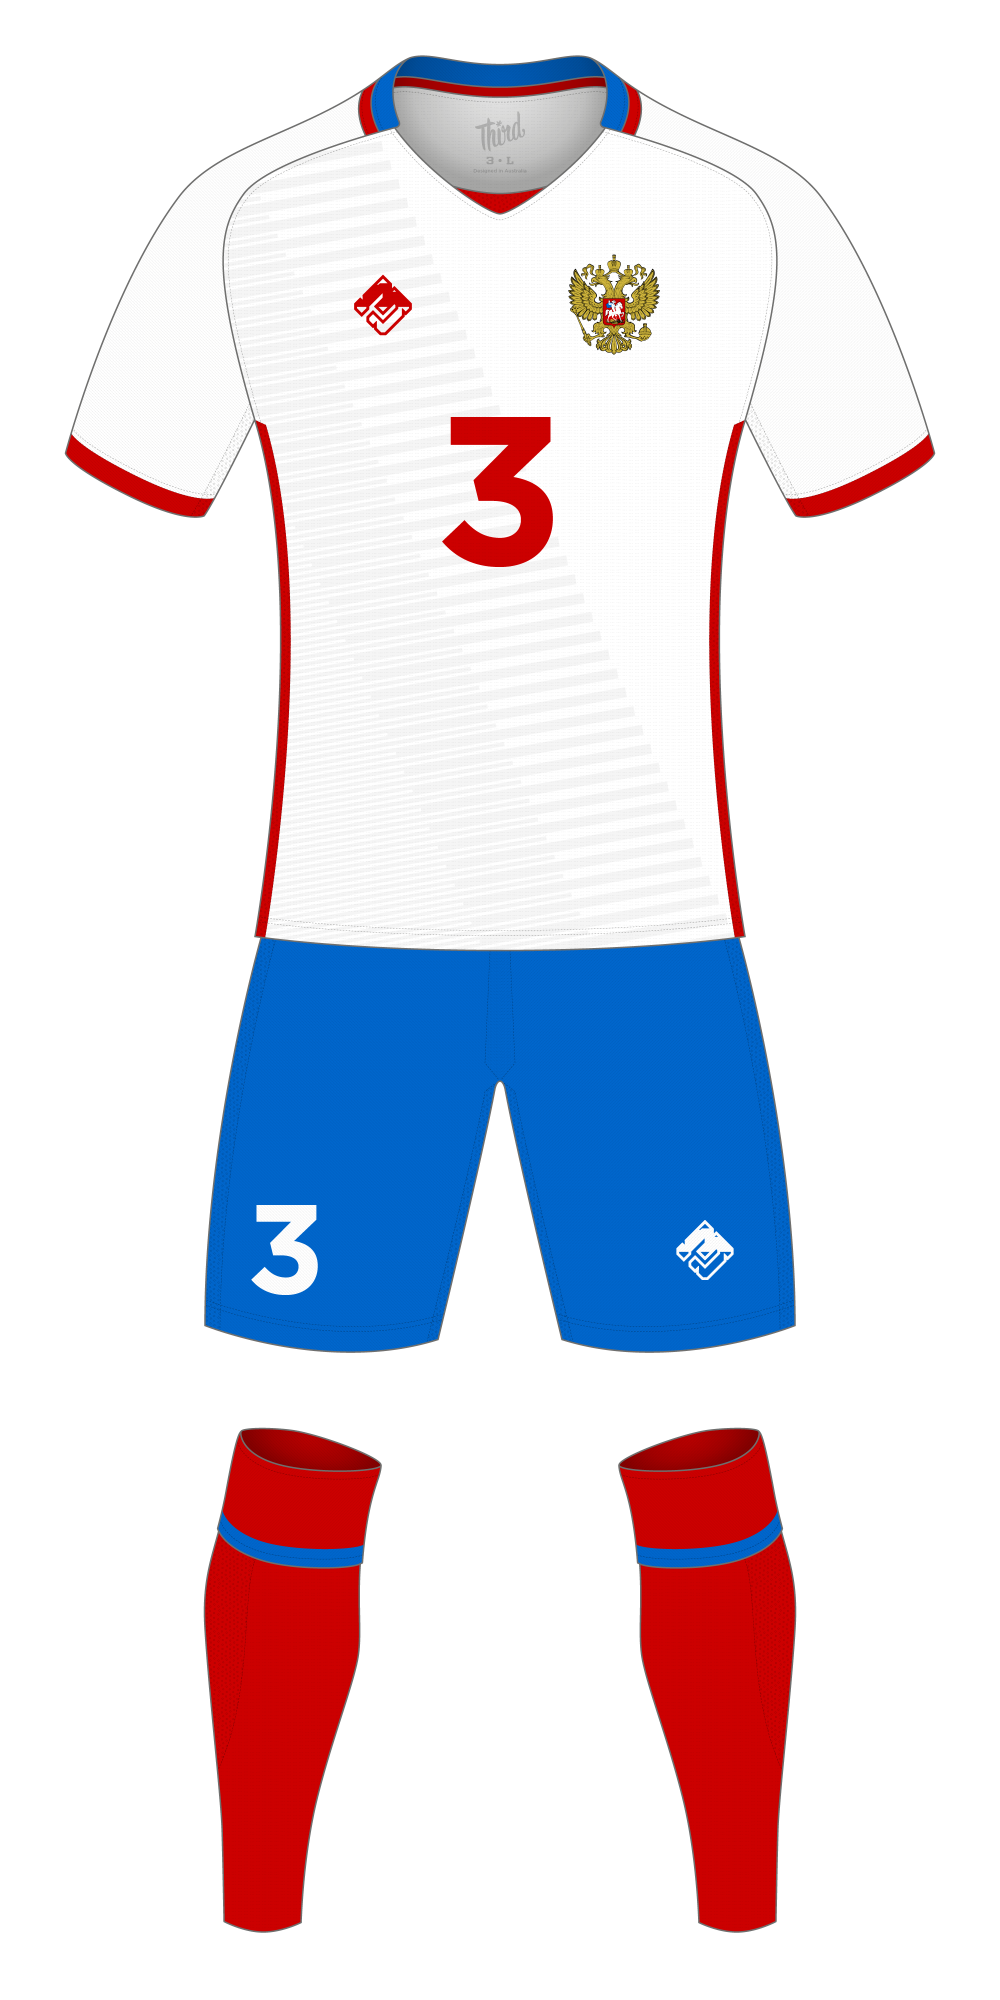 Russia World Cup 2018 concept